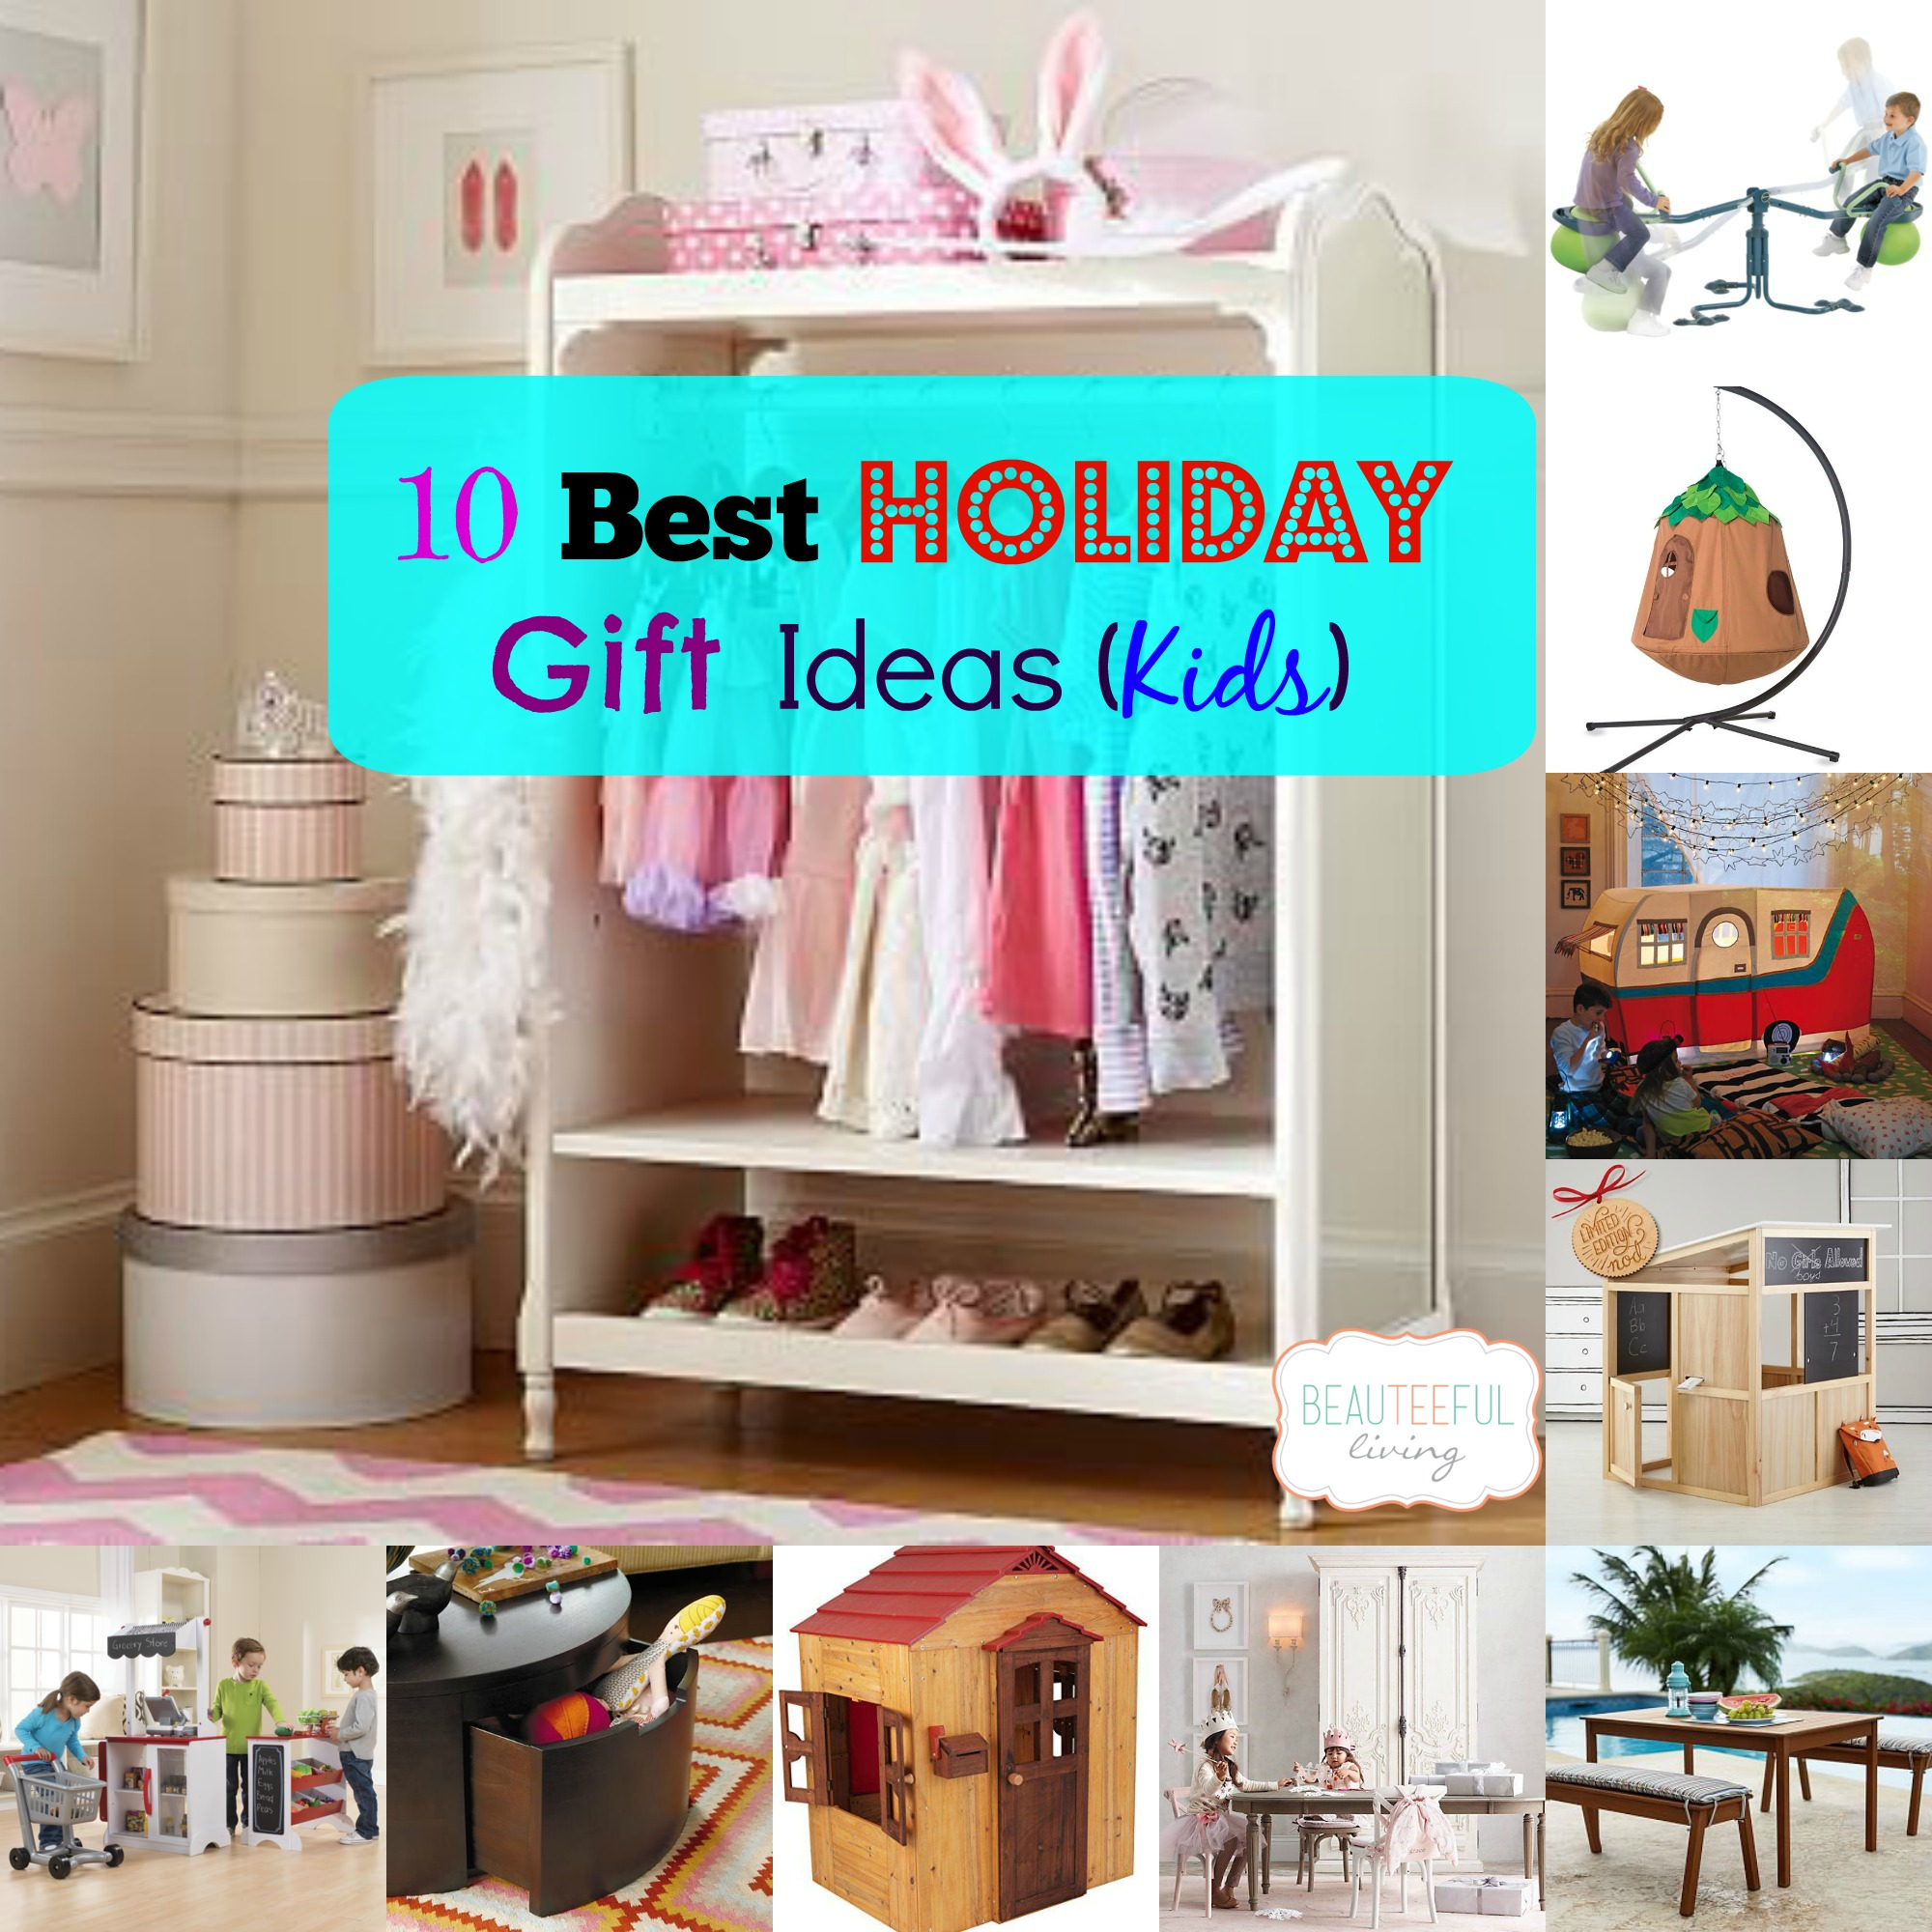 10 Best Holiday Gifts for Kids - BEAUTEEFUL Living